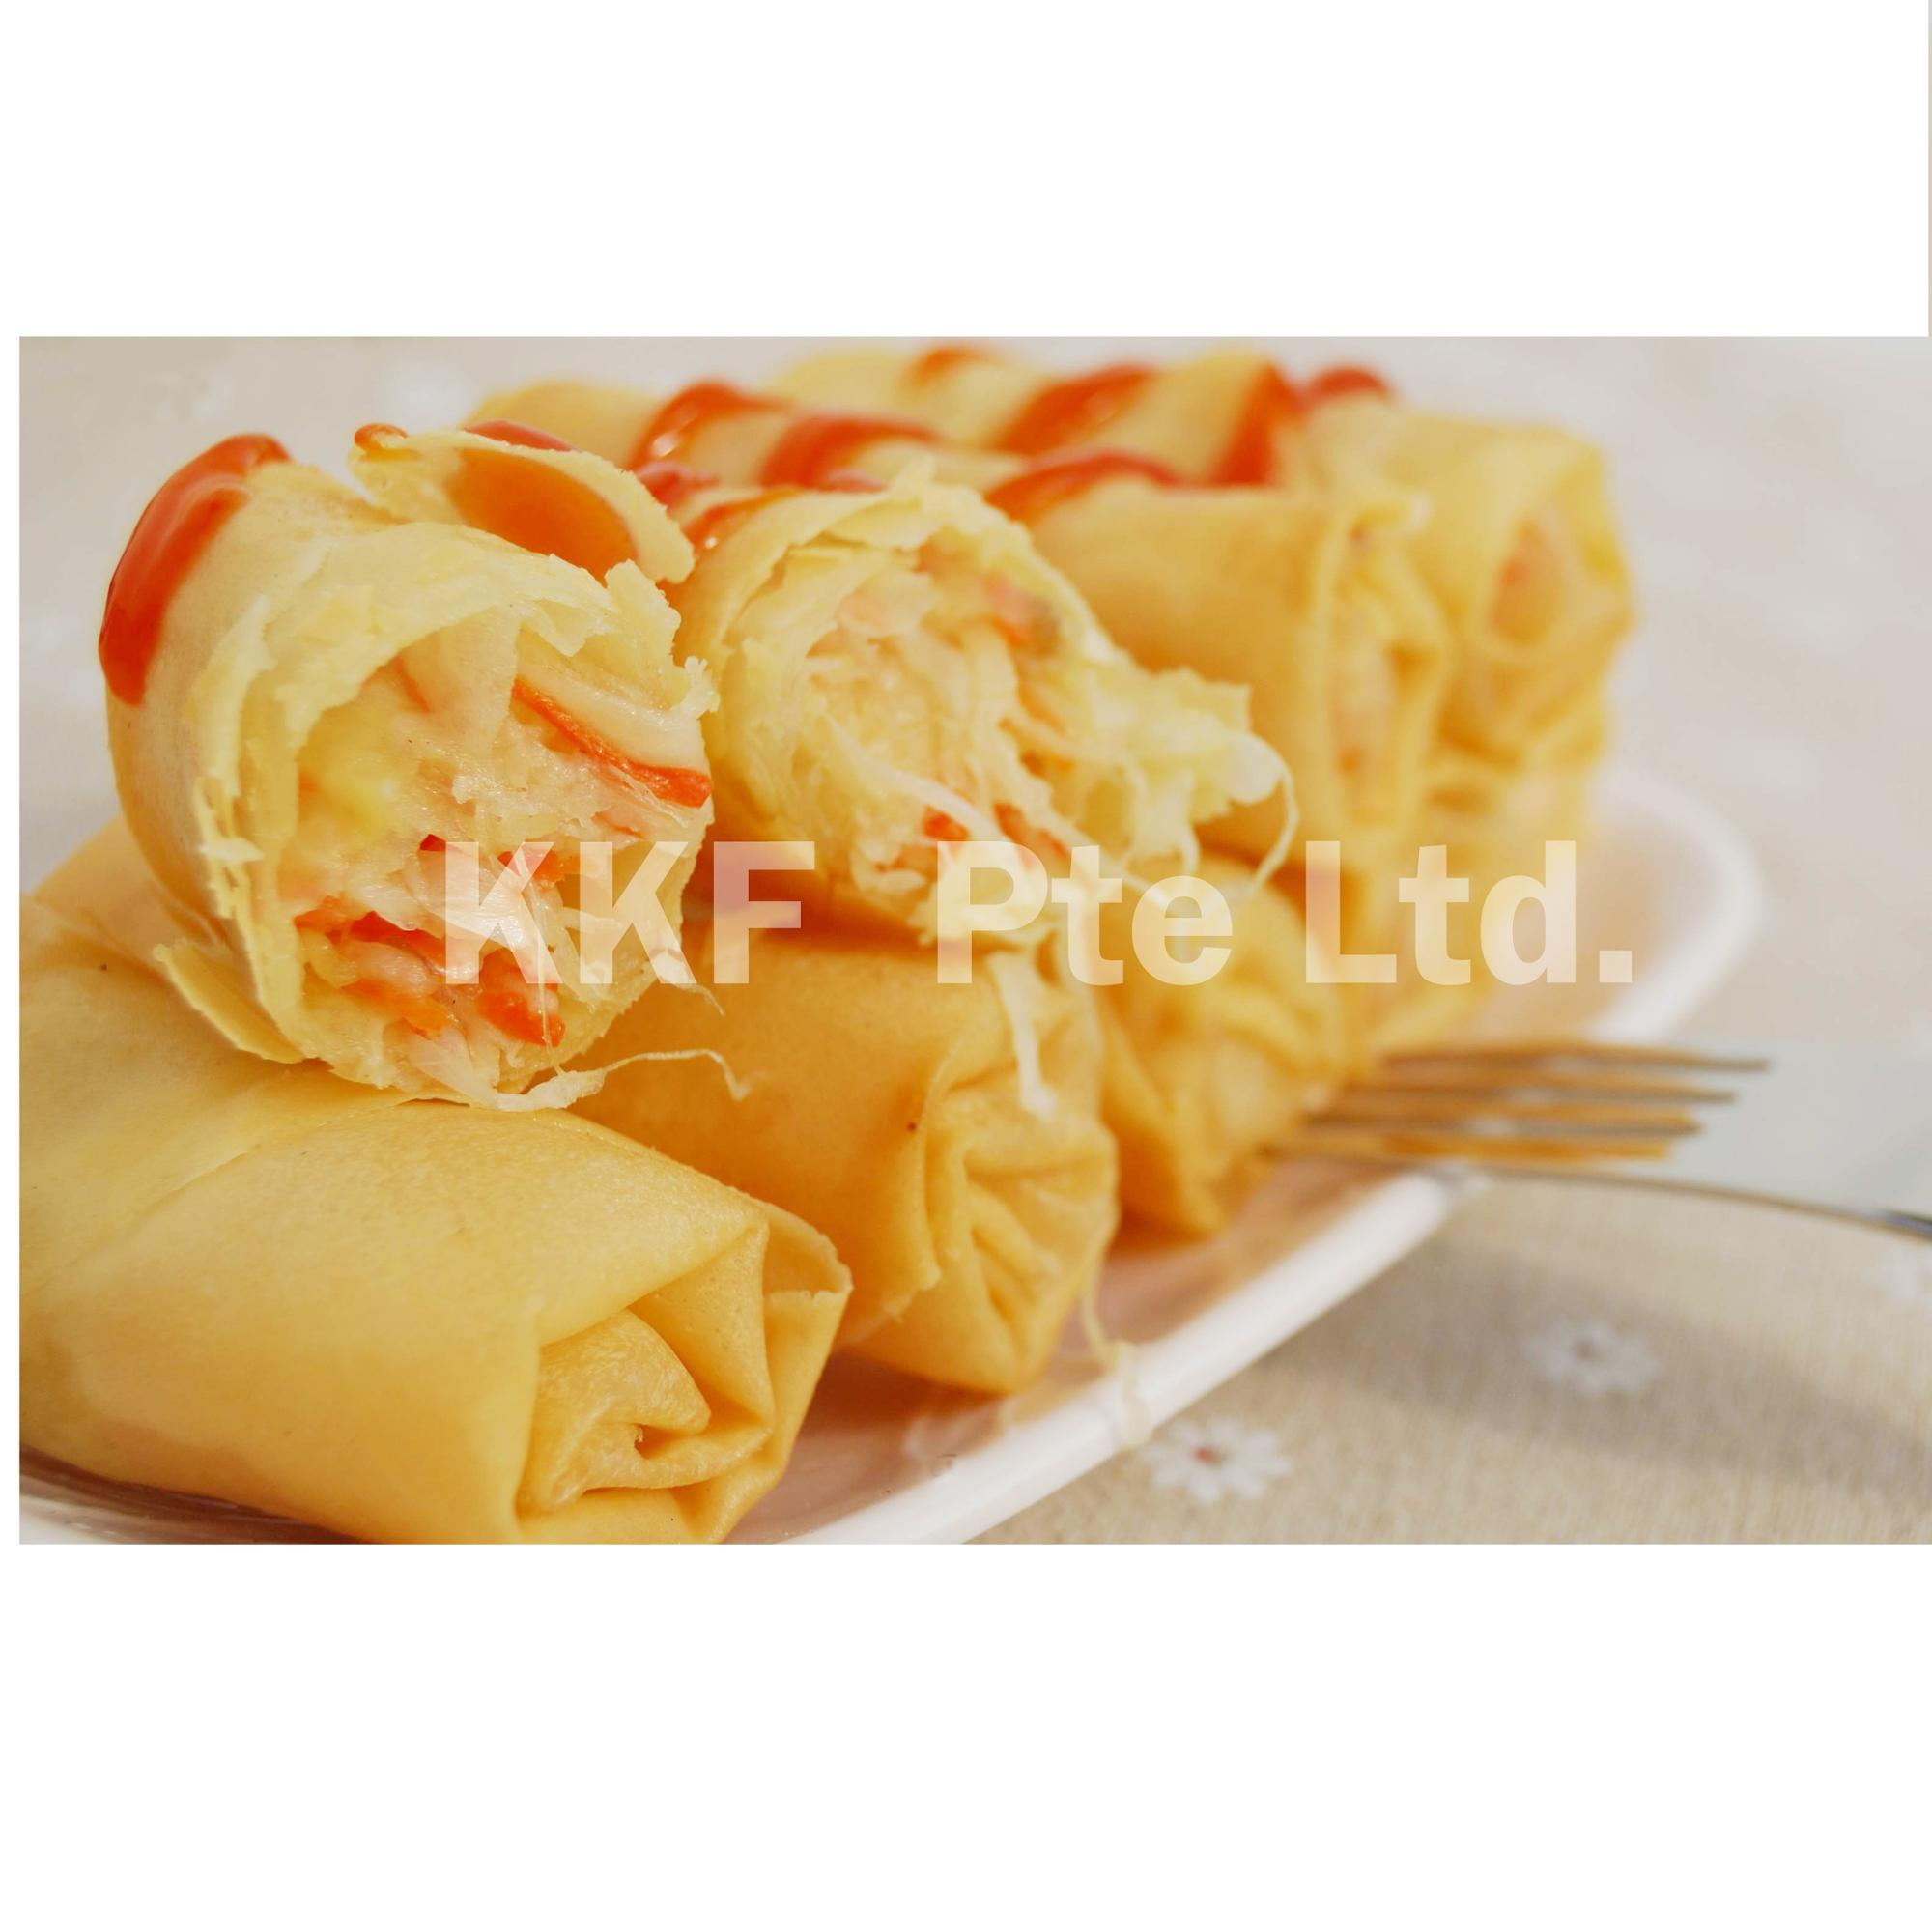 Singapore Food Suppliers Vegetable Spring Roll